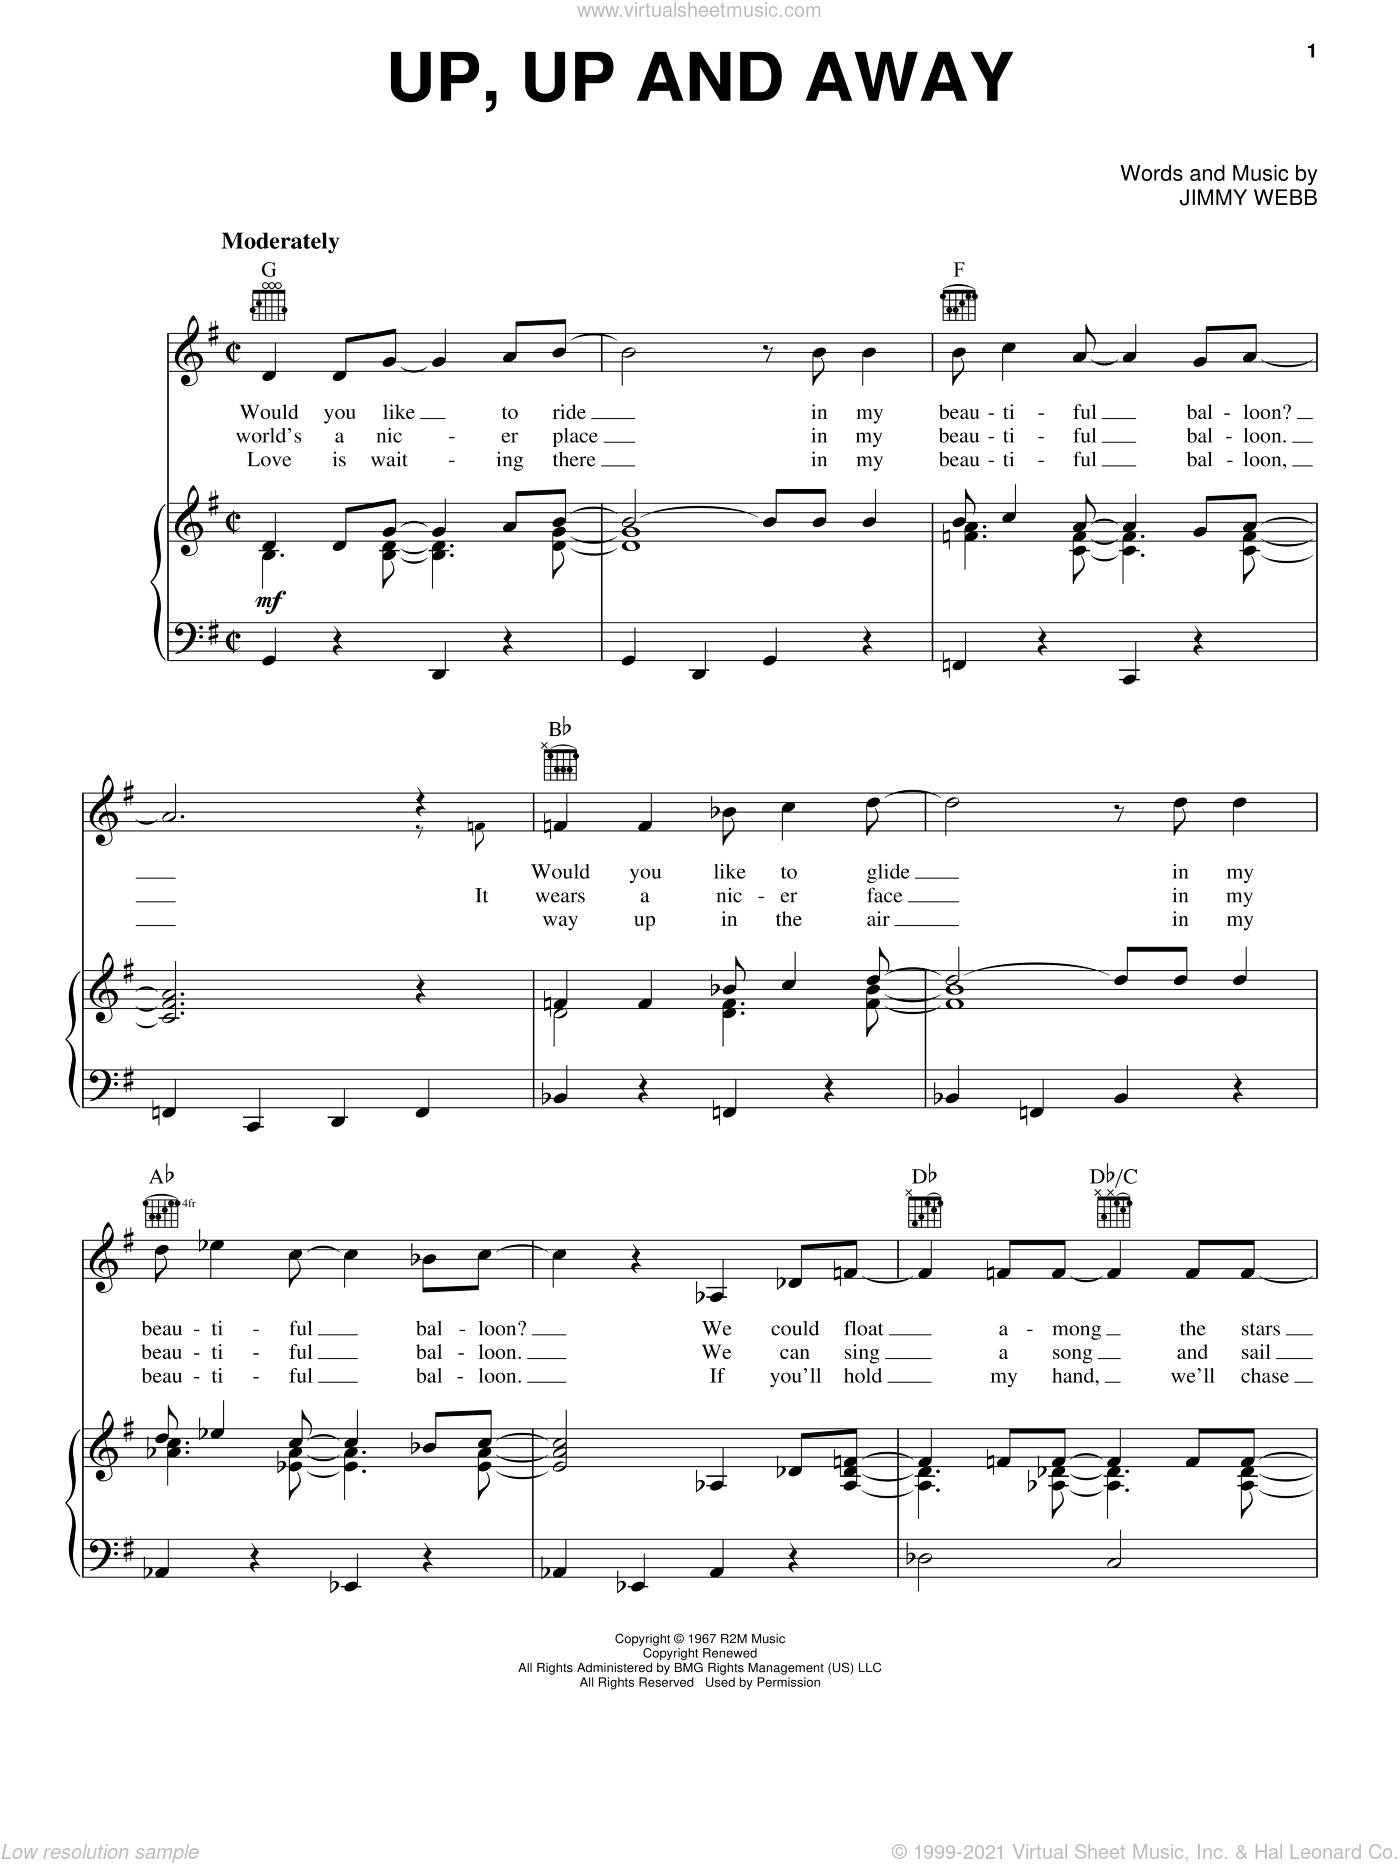 Up, Up And Away sheet music for voice, piano or guitar by Jimmy Webb